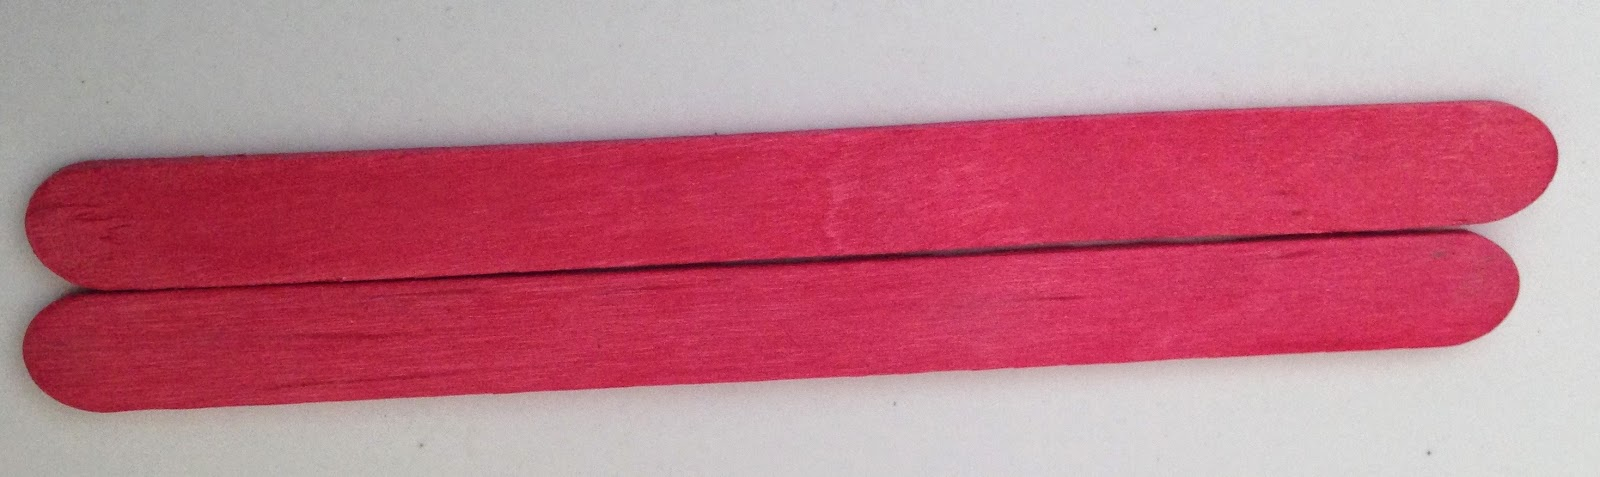 2 red color sticks